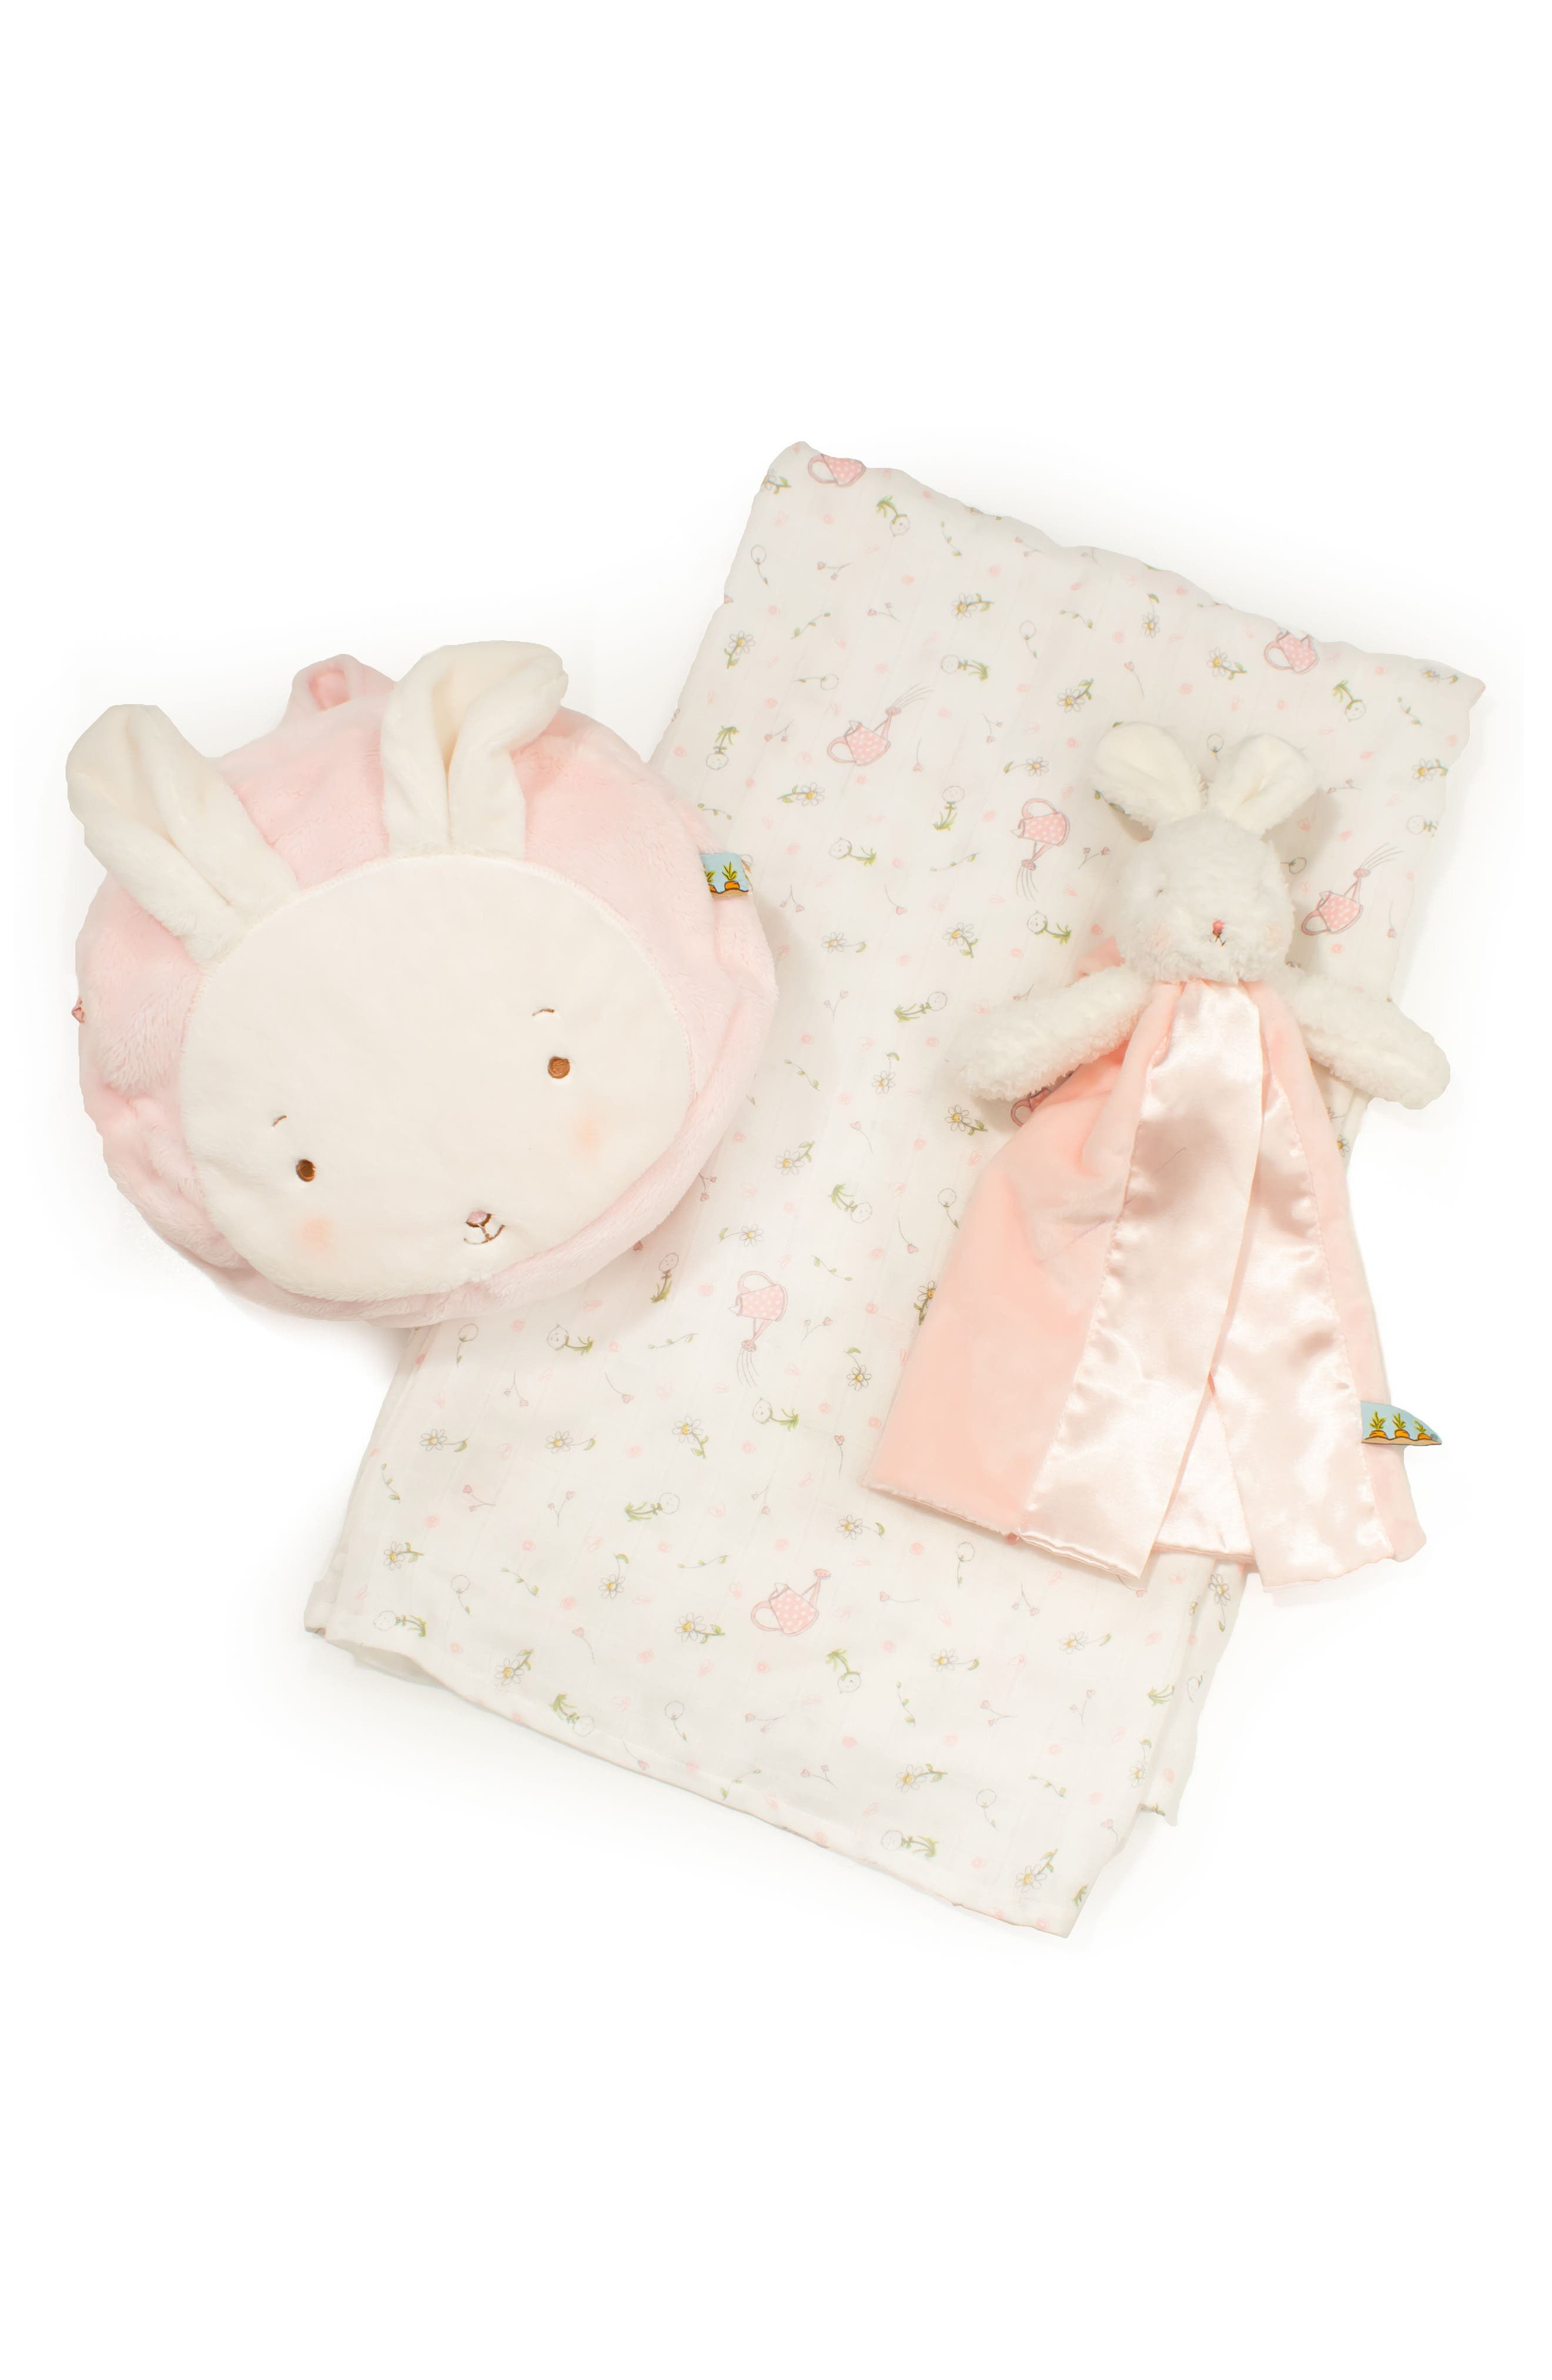 Blossom On the Go Gift Set,                         Main,                         color, BLOSSOM PINK